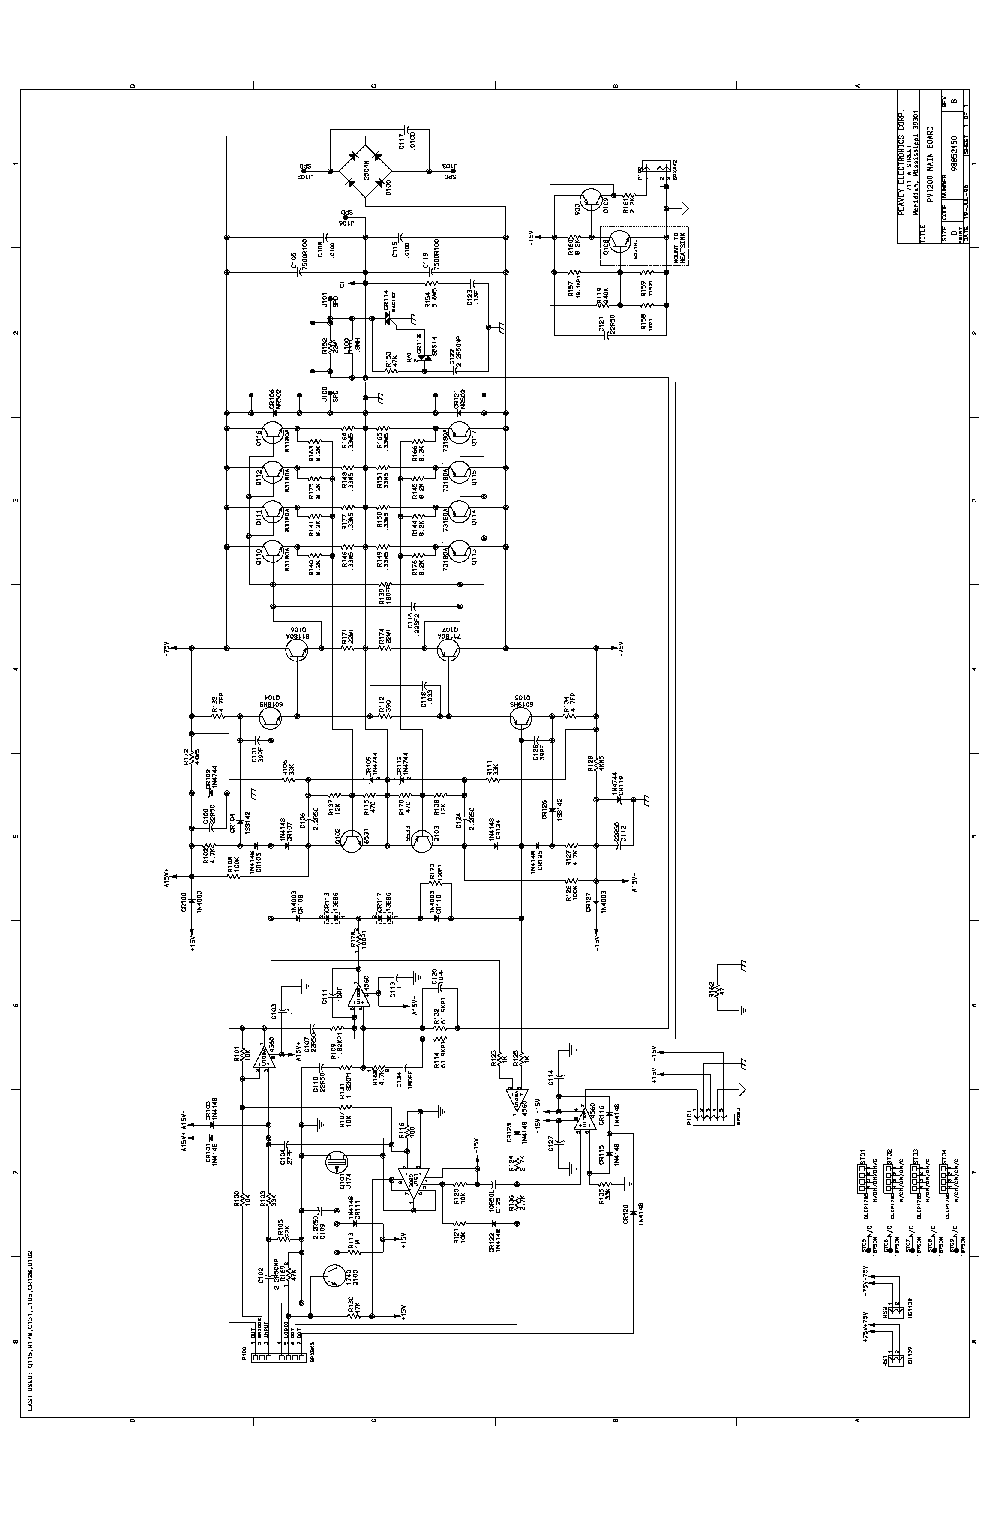 PEAVEY NASHVILLE 400 Service Manual download, schematics